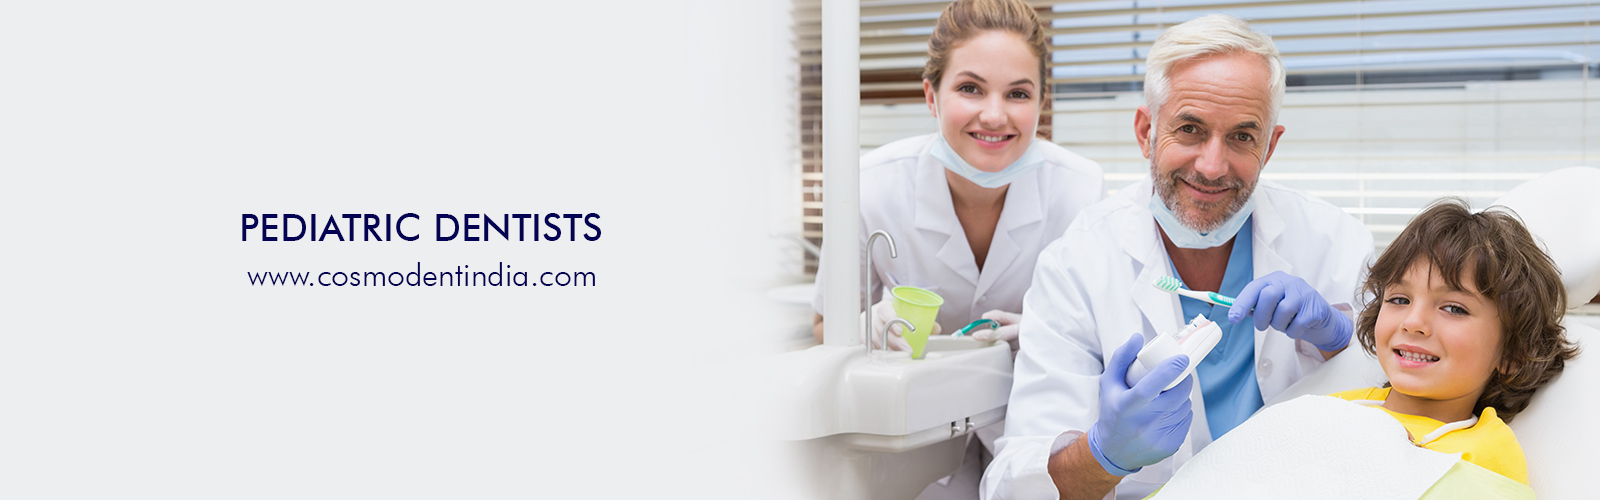 pediatric-dentists